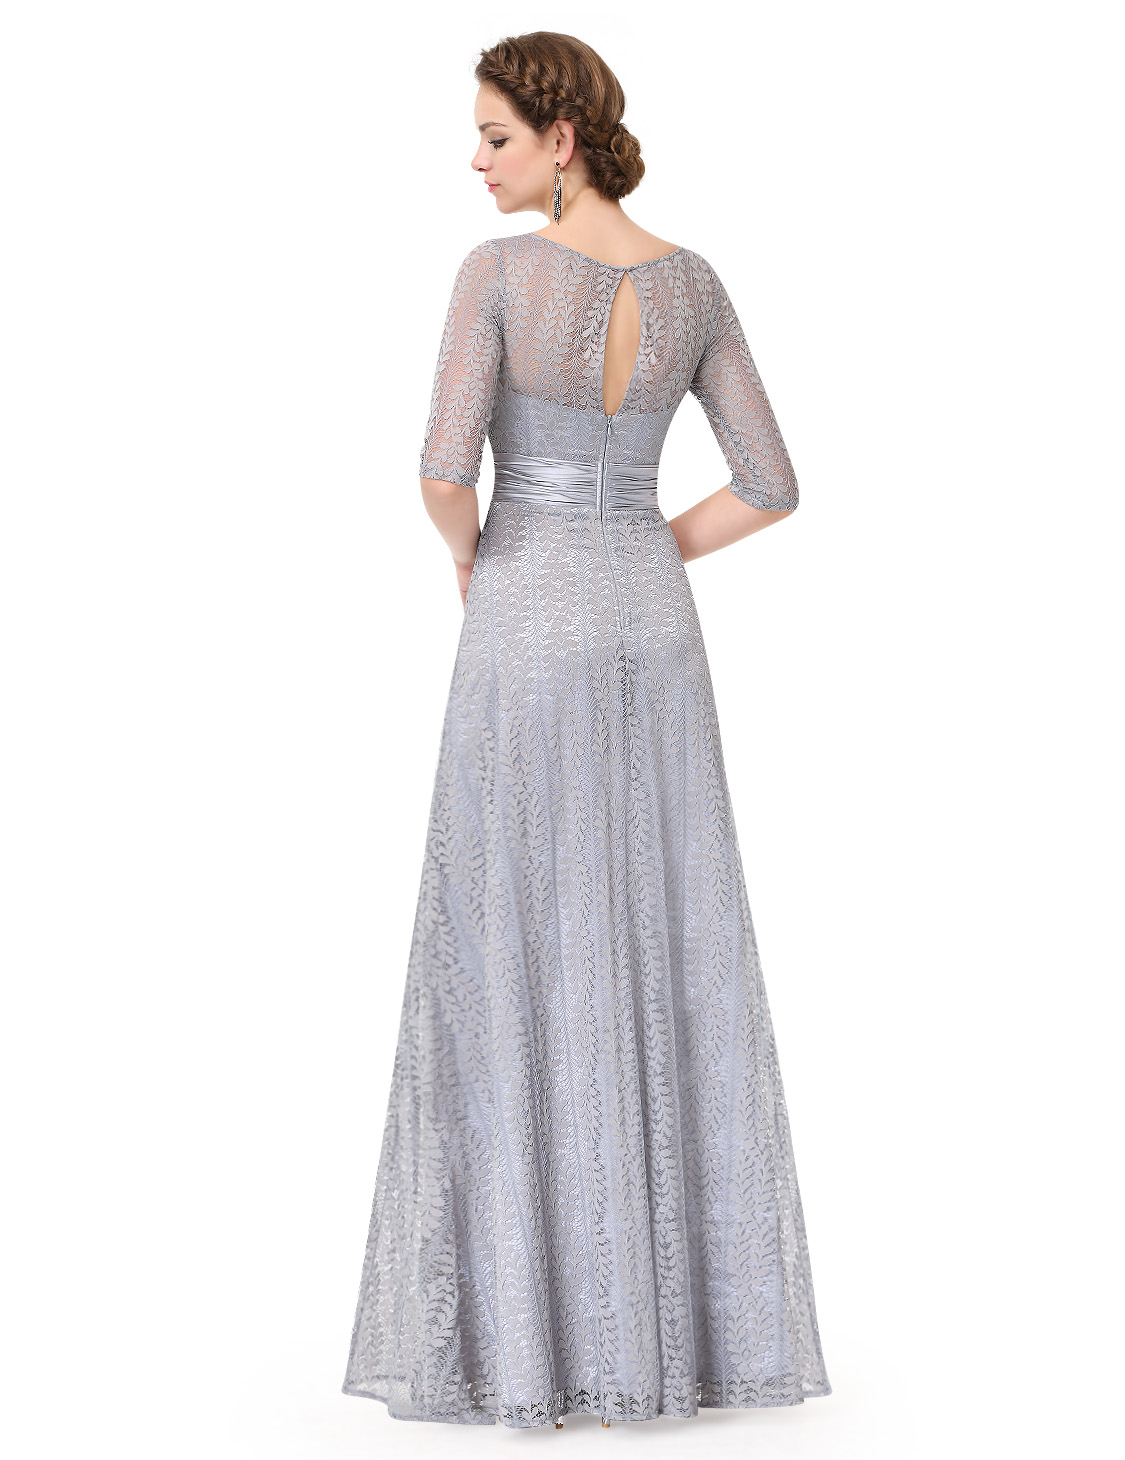 Ever-Pretty-Lace-Prom-Dress-Half-Sleeve-Bridesmaid-Evening-Party-Dresses-08878 thumbnail 22